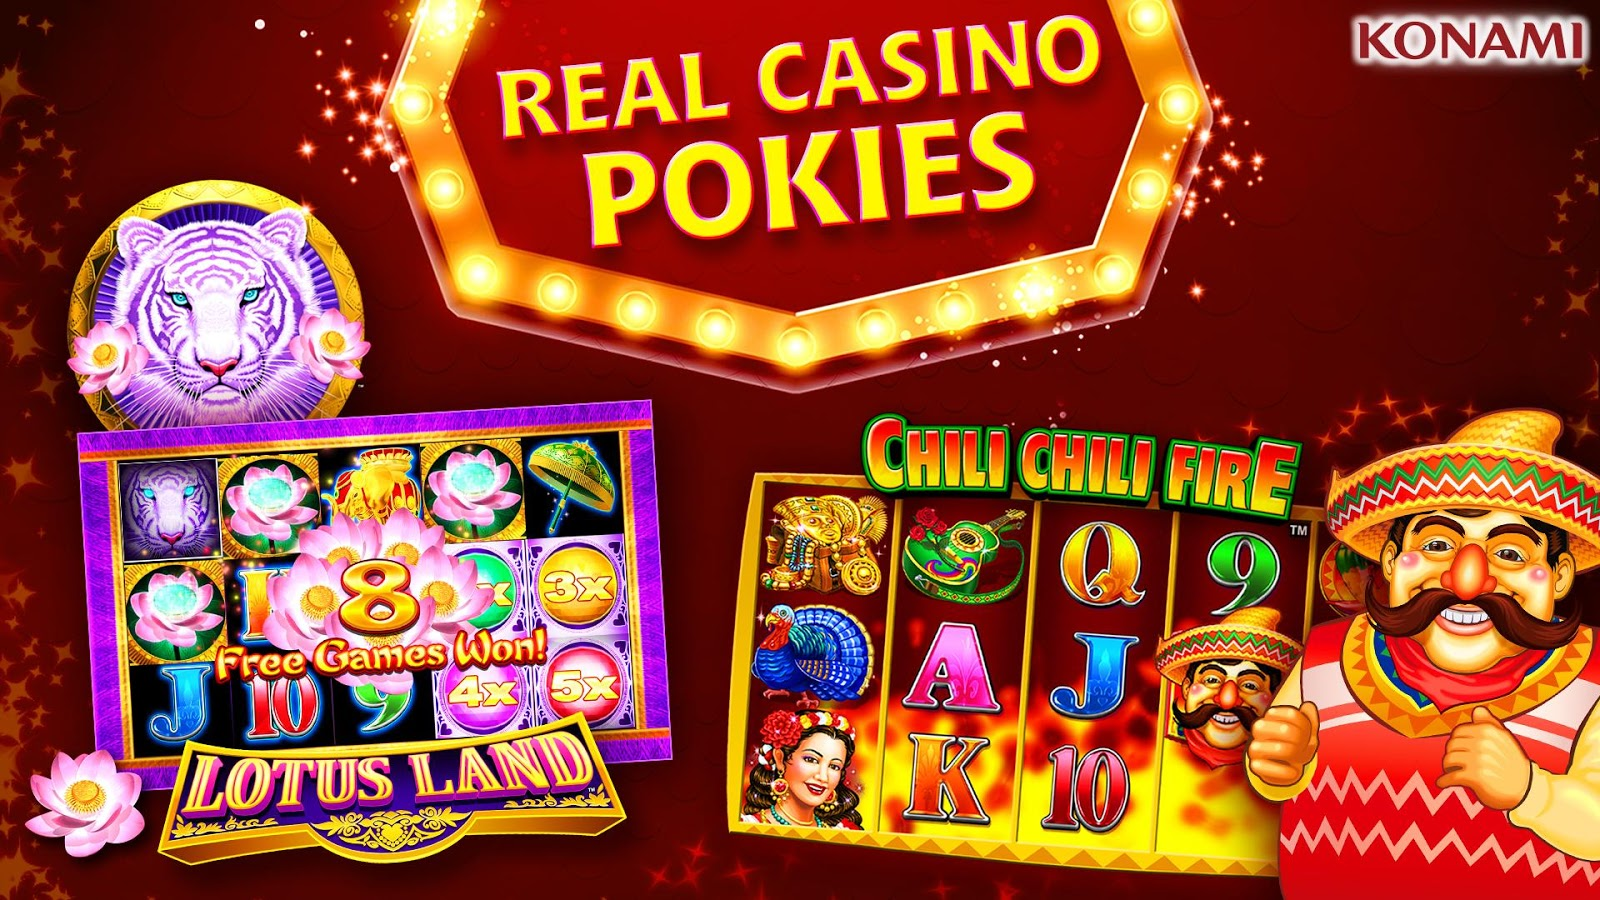 Test Out The Free Online Pokies with No Download